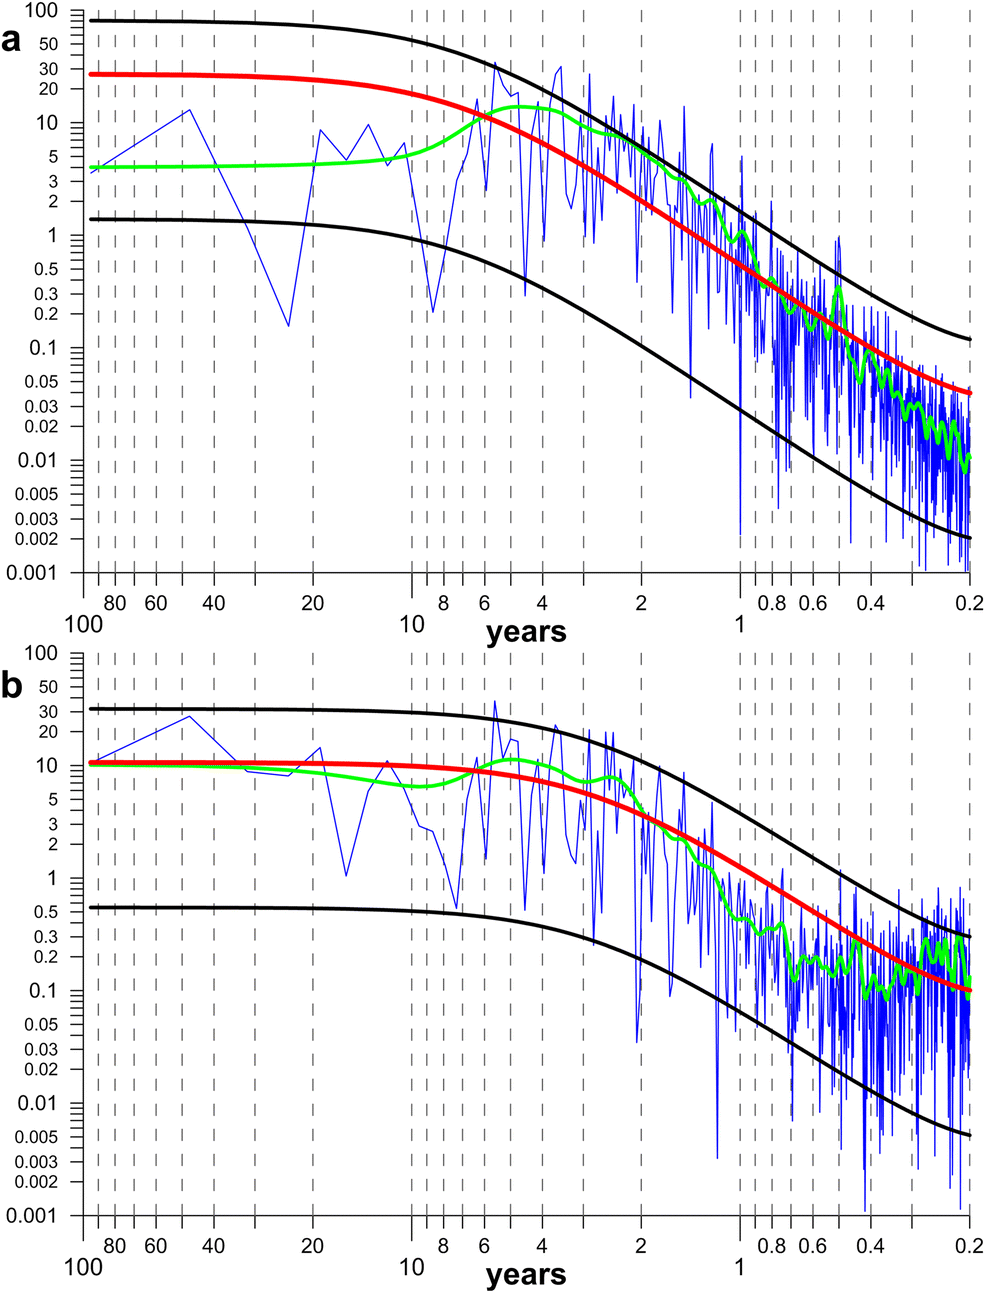 Nonchaotic and globally synchronized short-term climatic